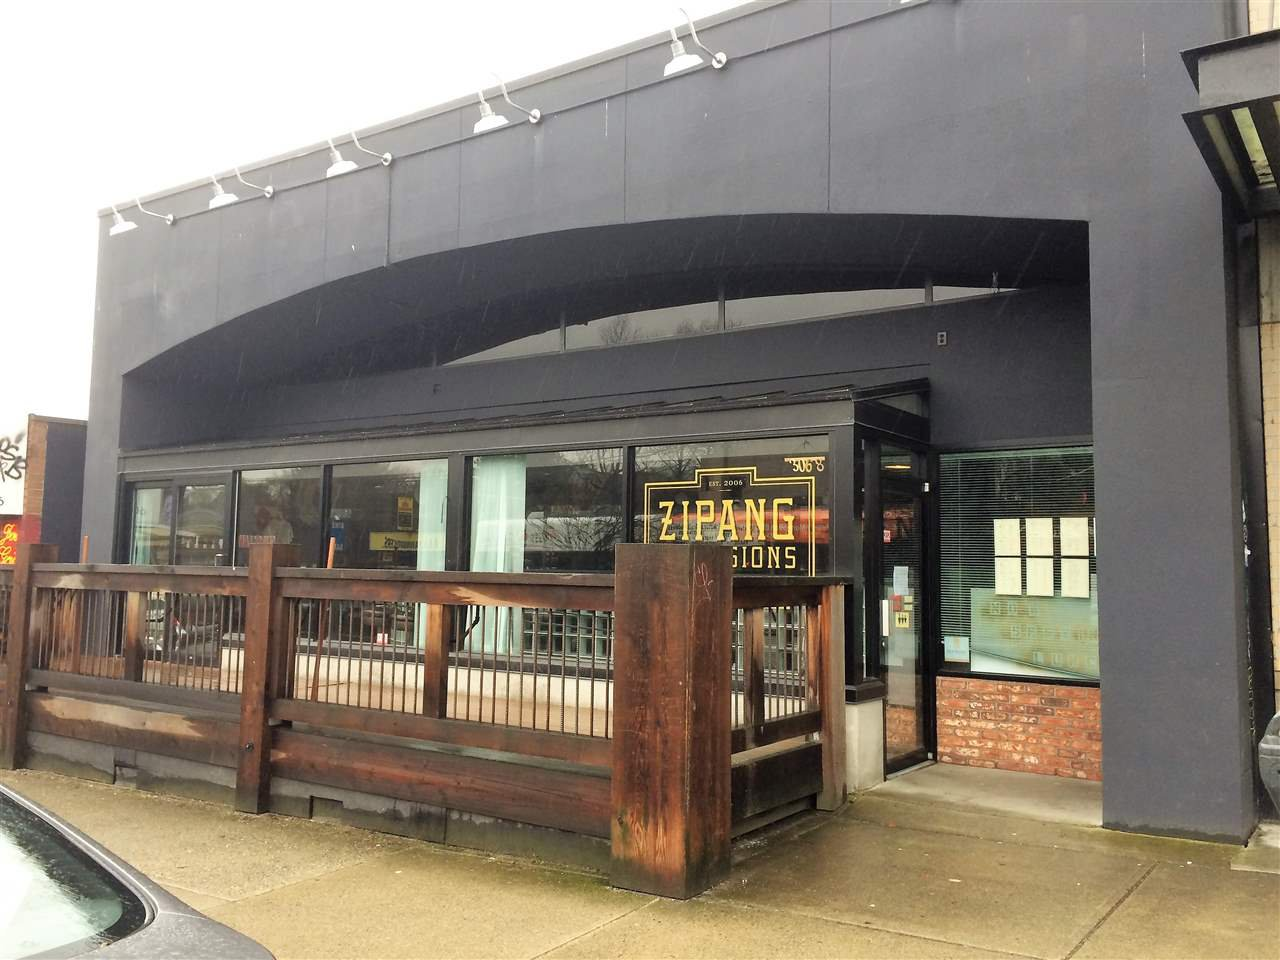 Main Photo: 3068 MAIN STREET in Vancouver: Mount Pleasant VE Business for sale (Vancouver East)  : MLS®# C8021205